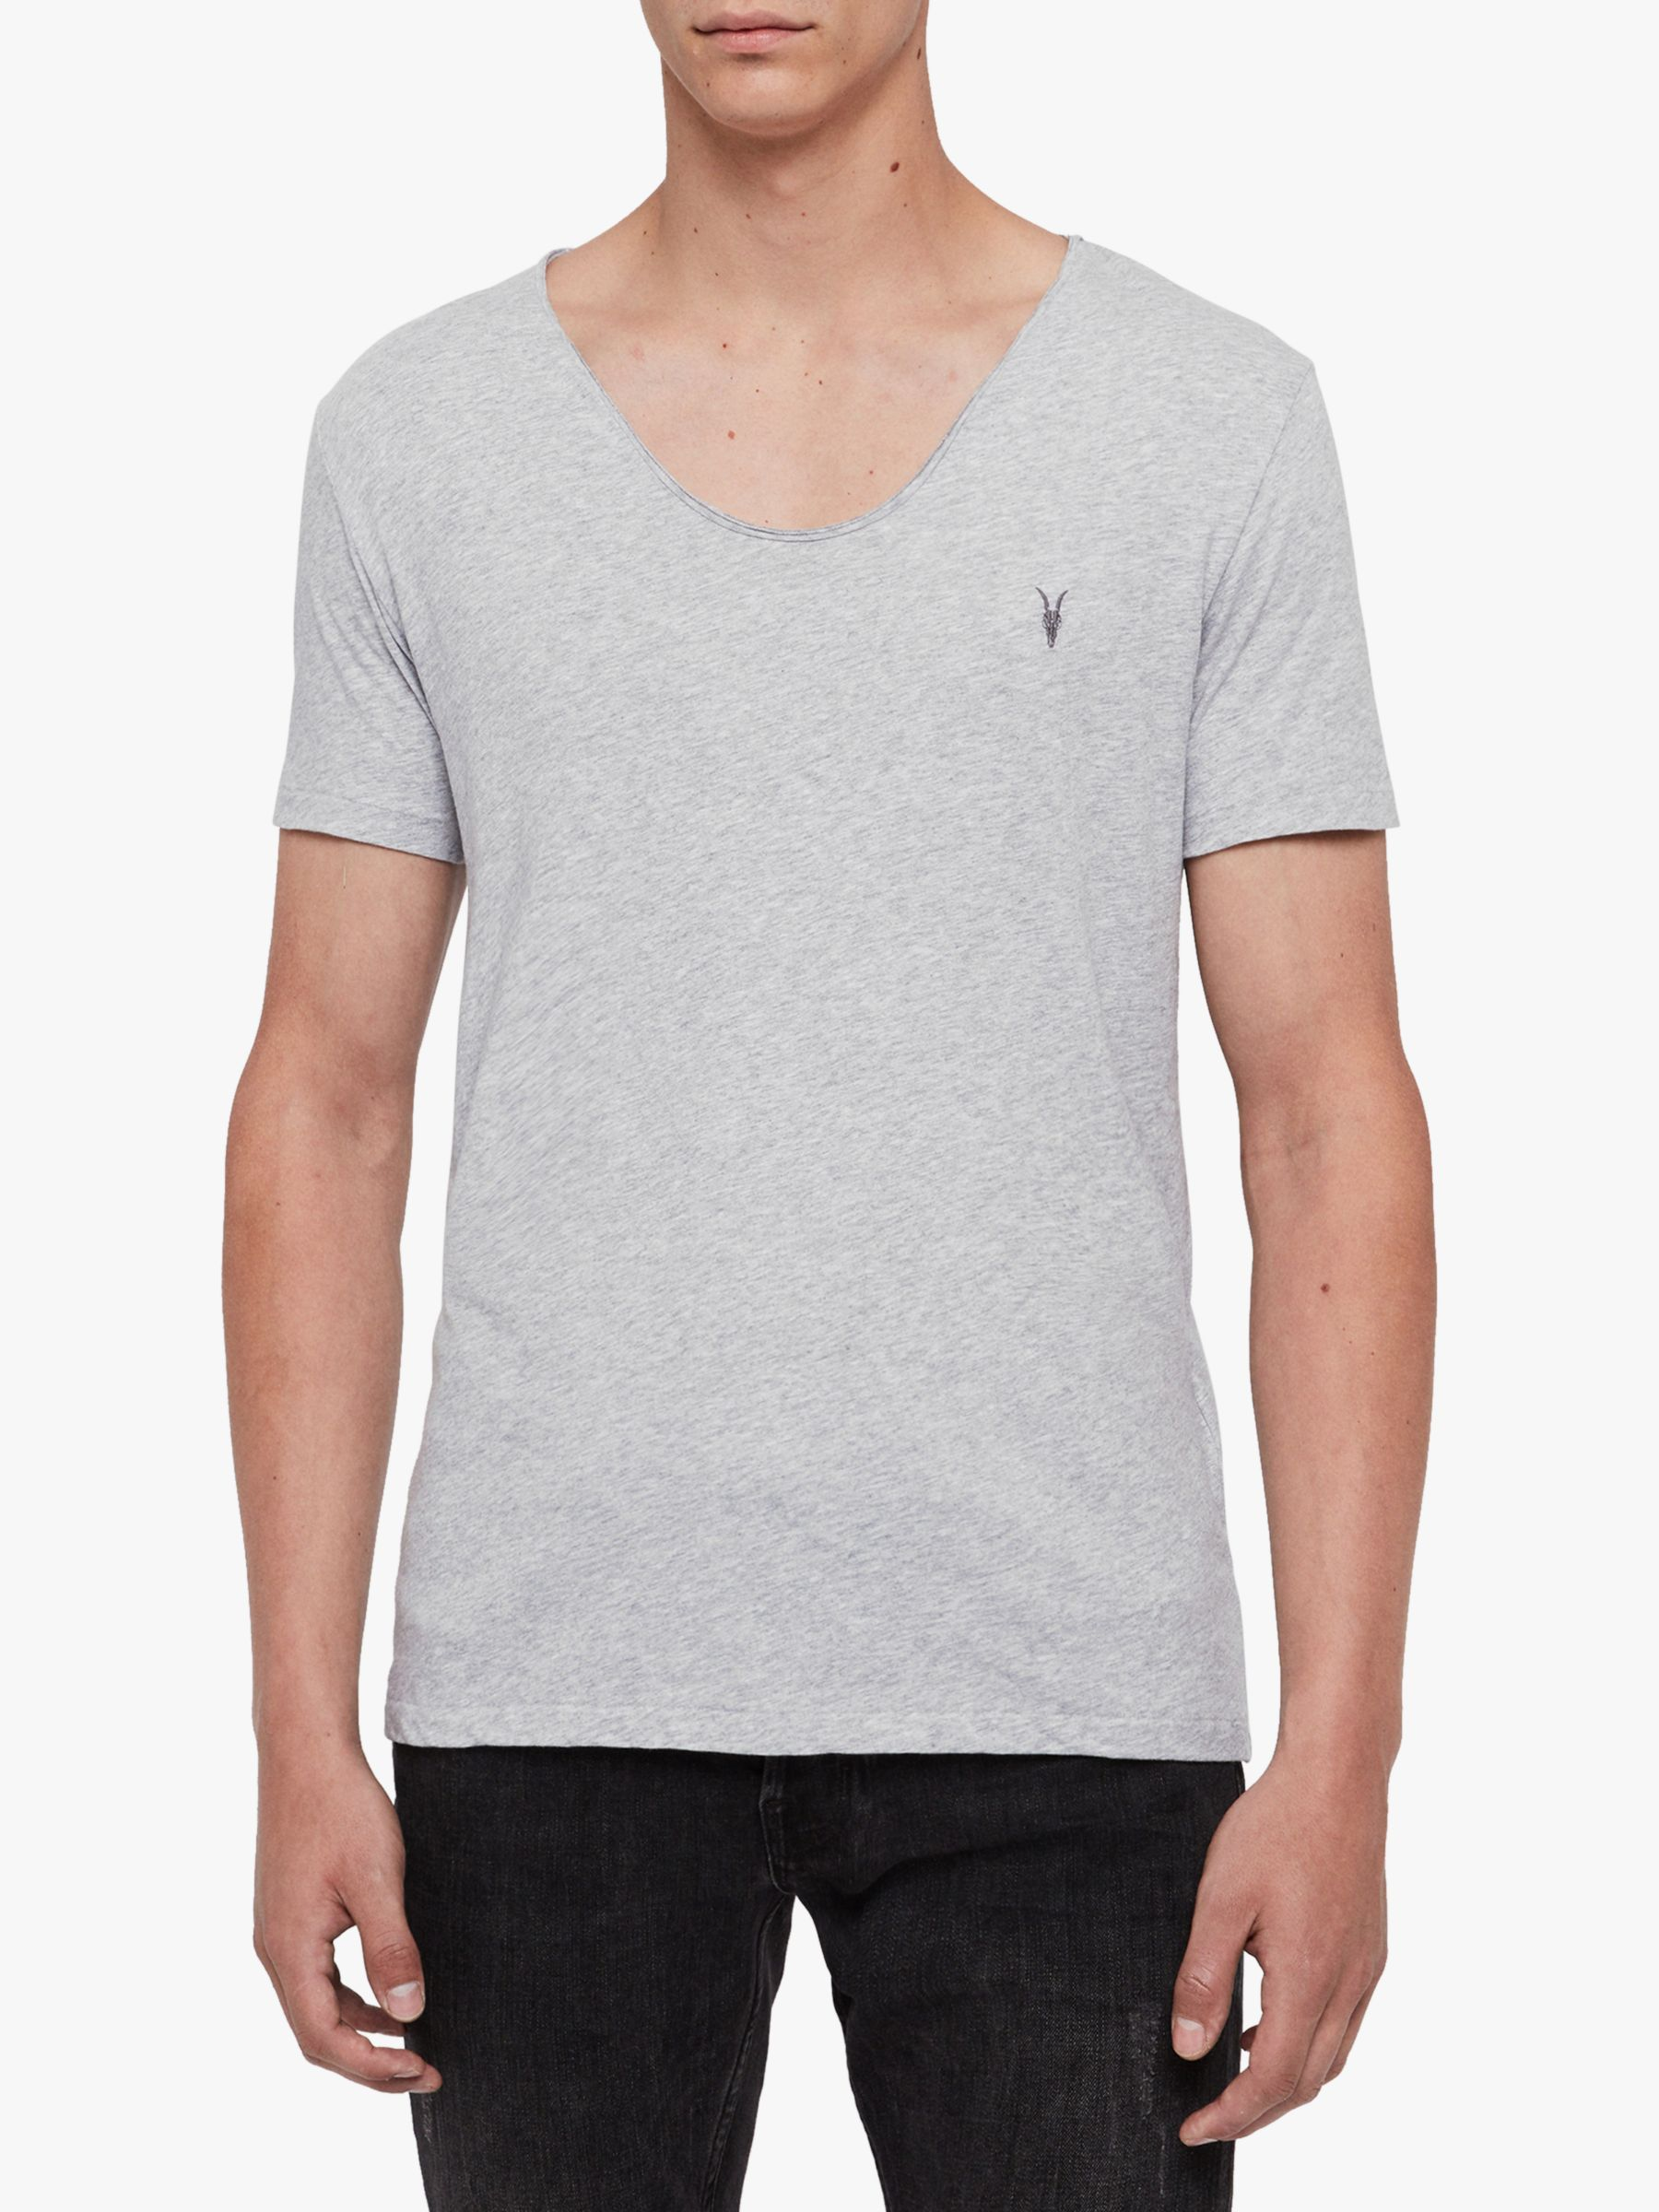 AllSaints AllSaints Tonic Scoop Neck T-Shirt, Grey Marl